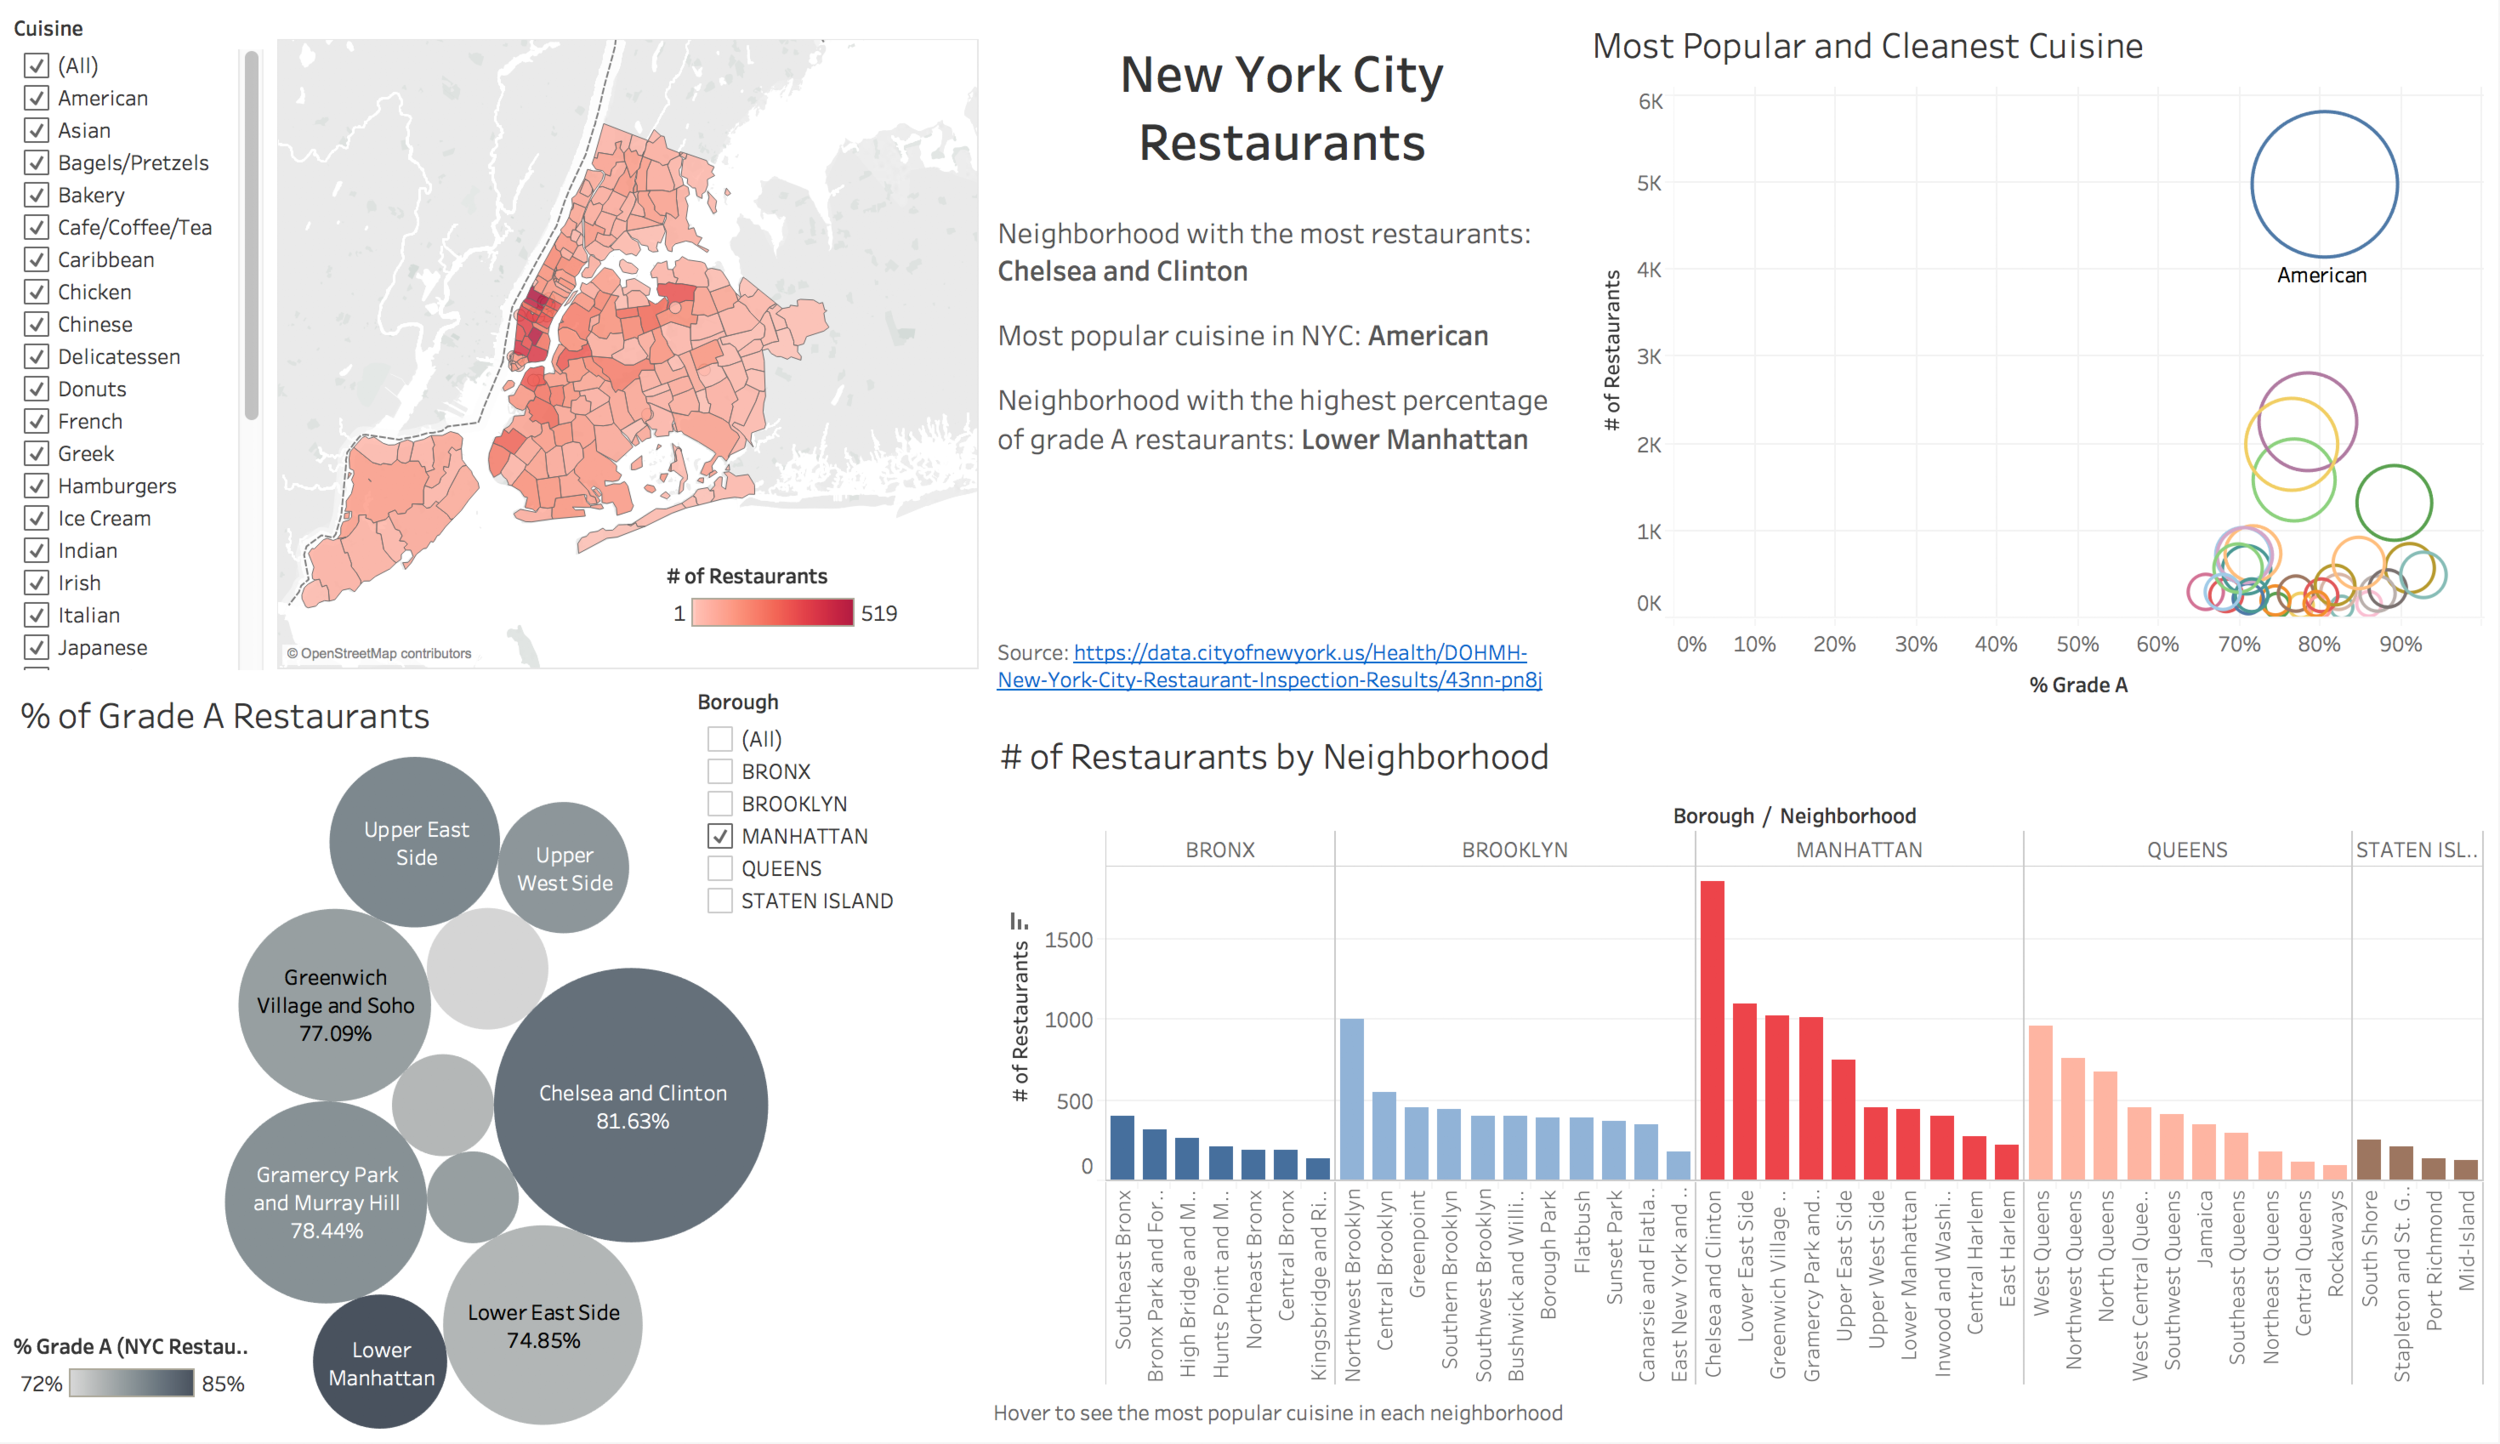 Data Visualization Created by Tableau Public Interactive dashboard: https://public.tableau.com/views/NYCRestaurants_0/Dashboard?:embed=y&:display_count=yes